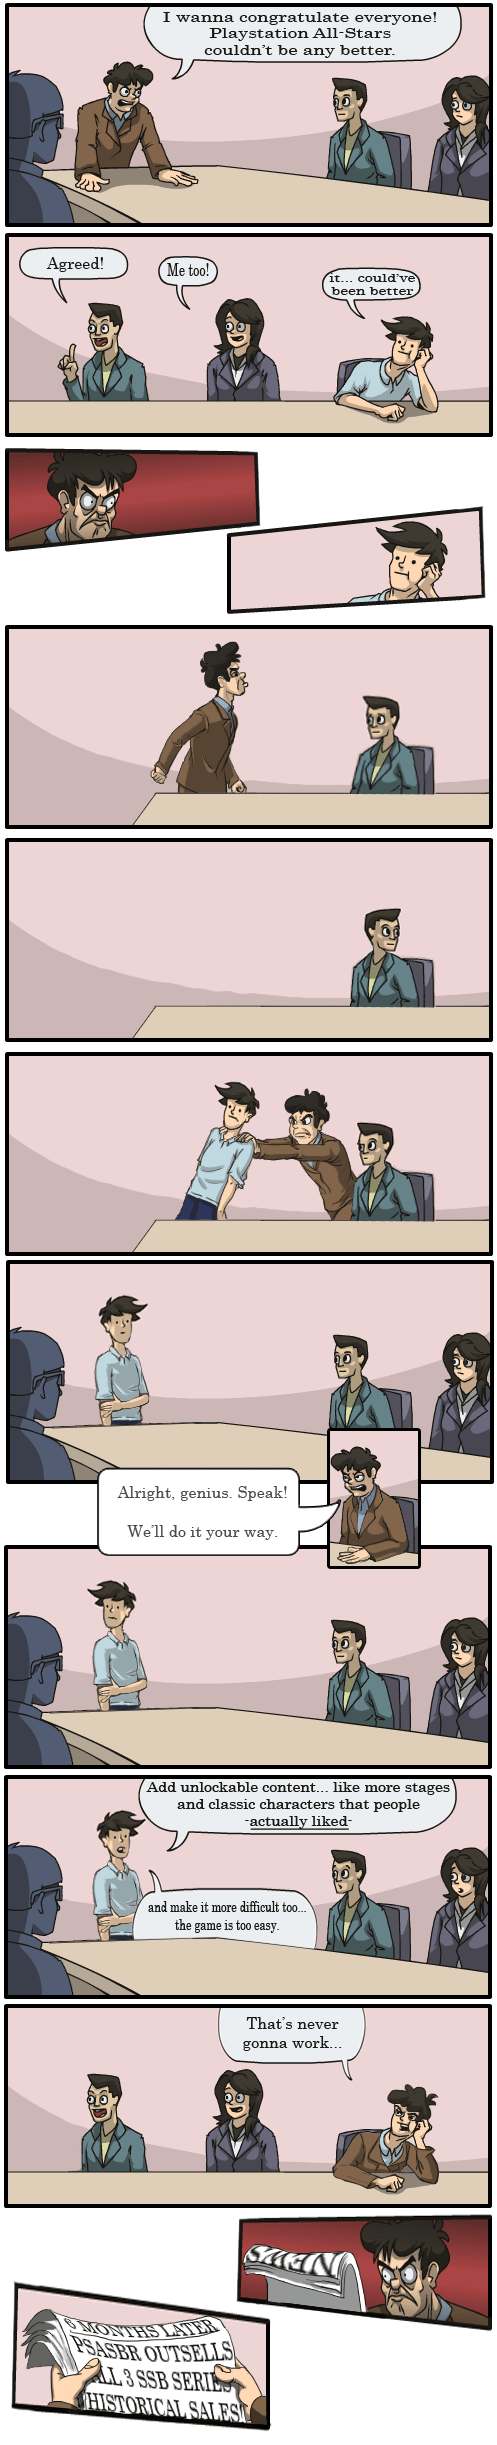 Not Another Boardroom Suggestion